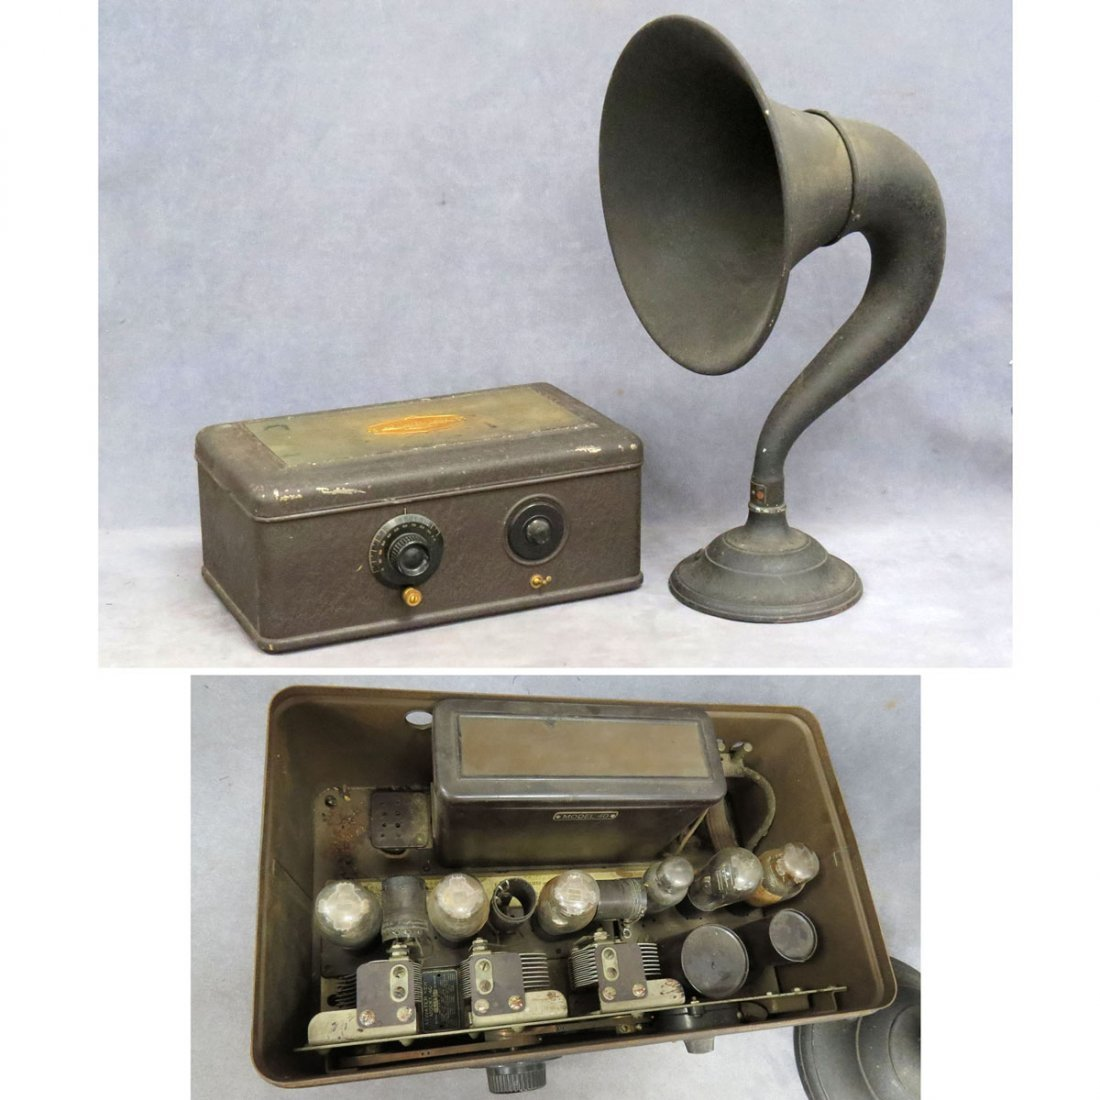 LOT (2) INCLUDING ATWATER KENT MODEL 40 RADIO